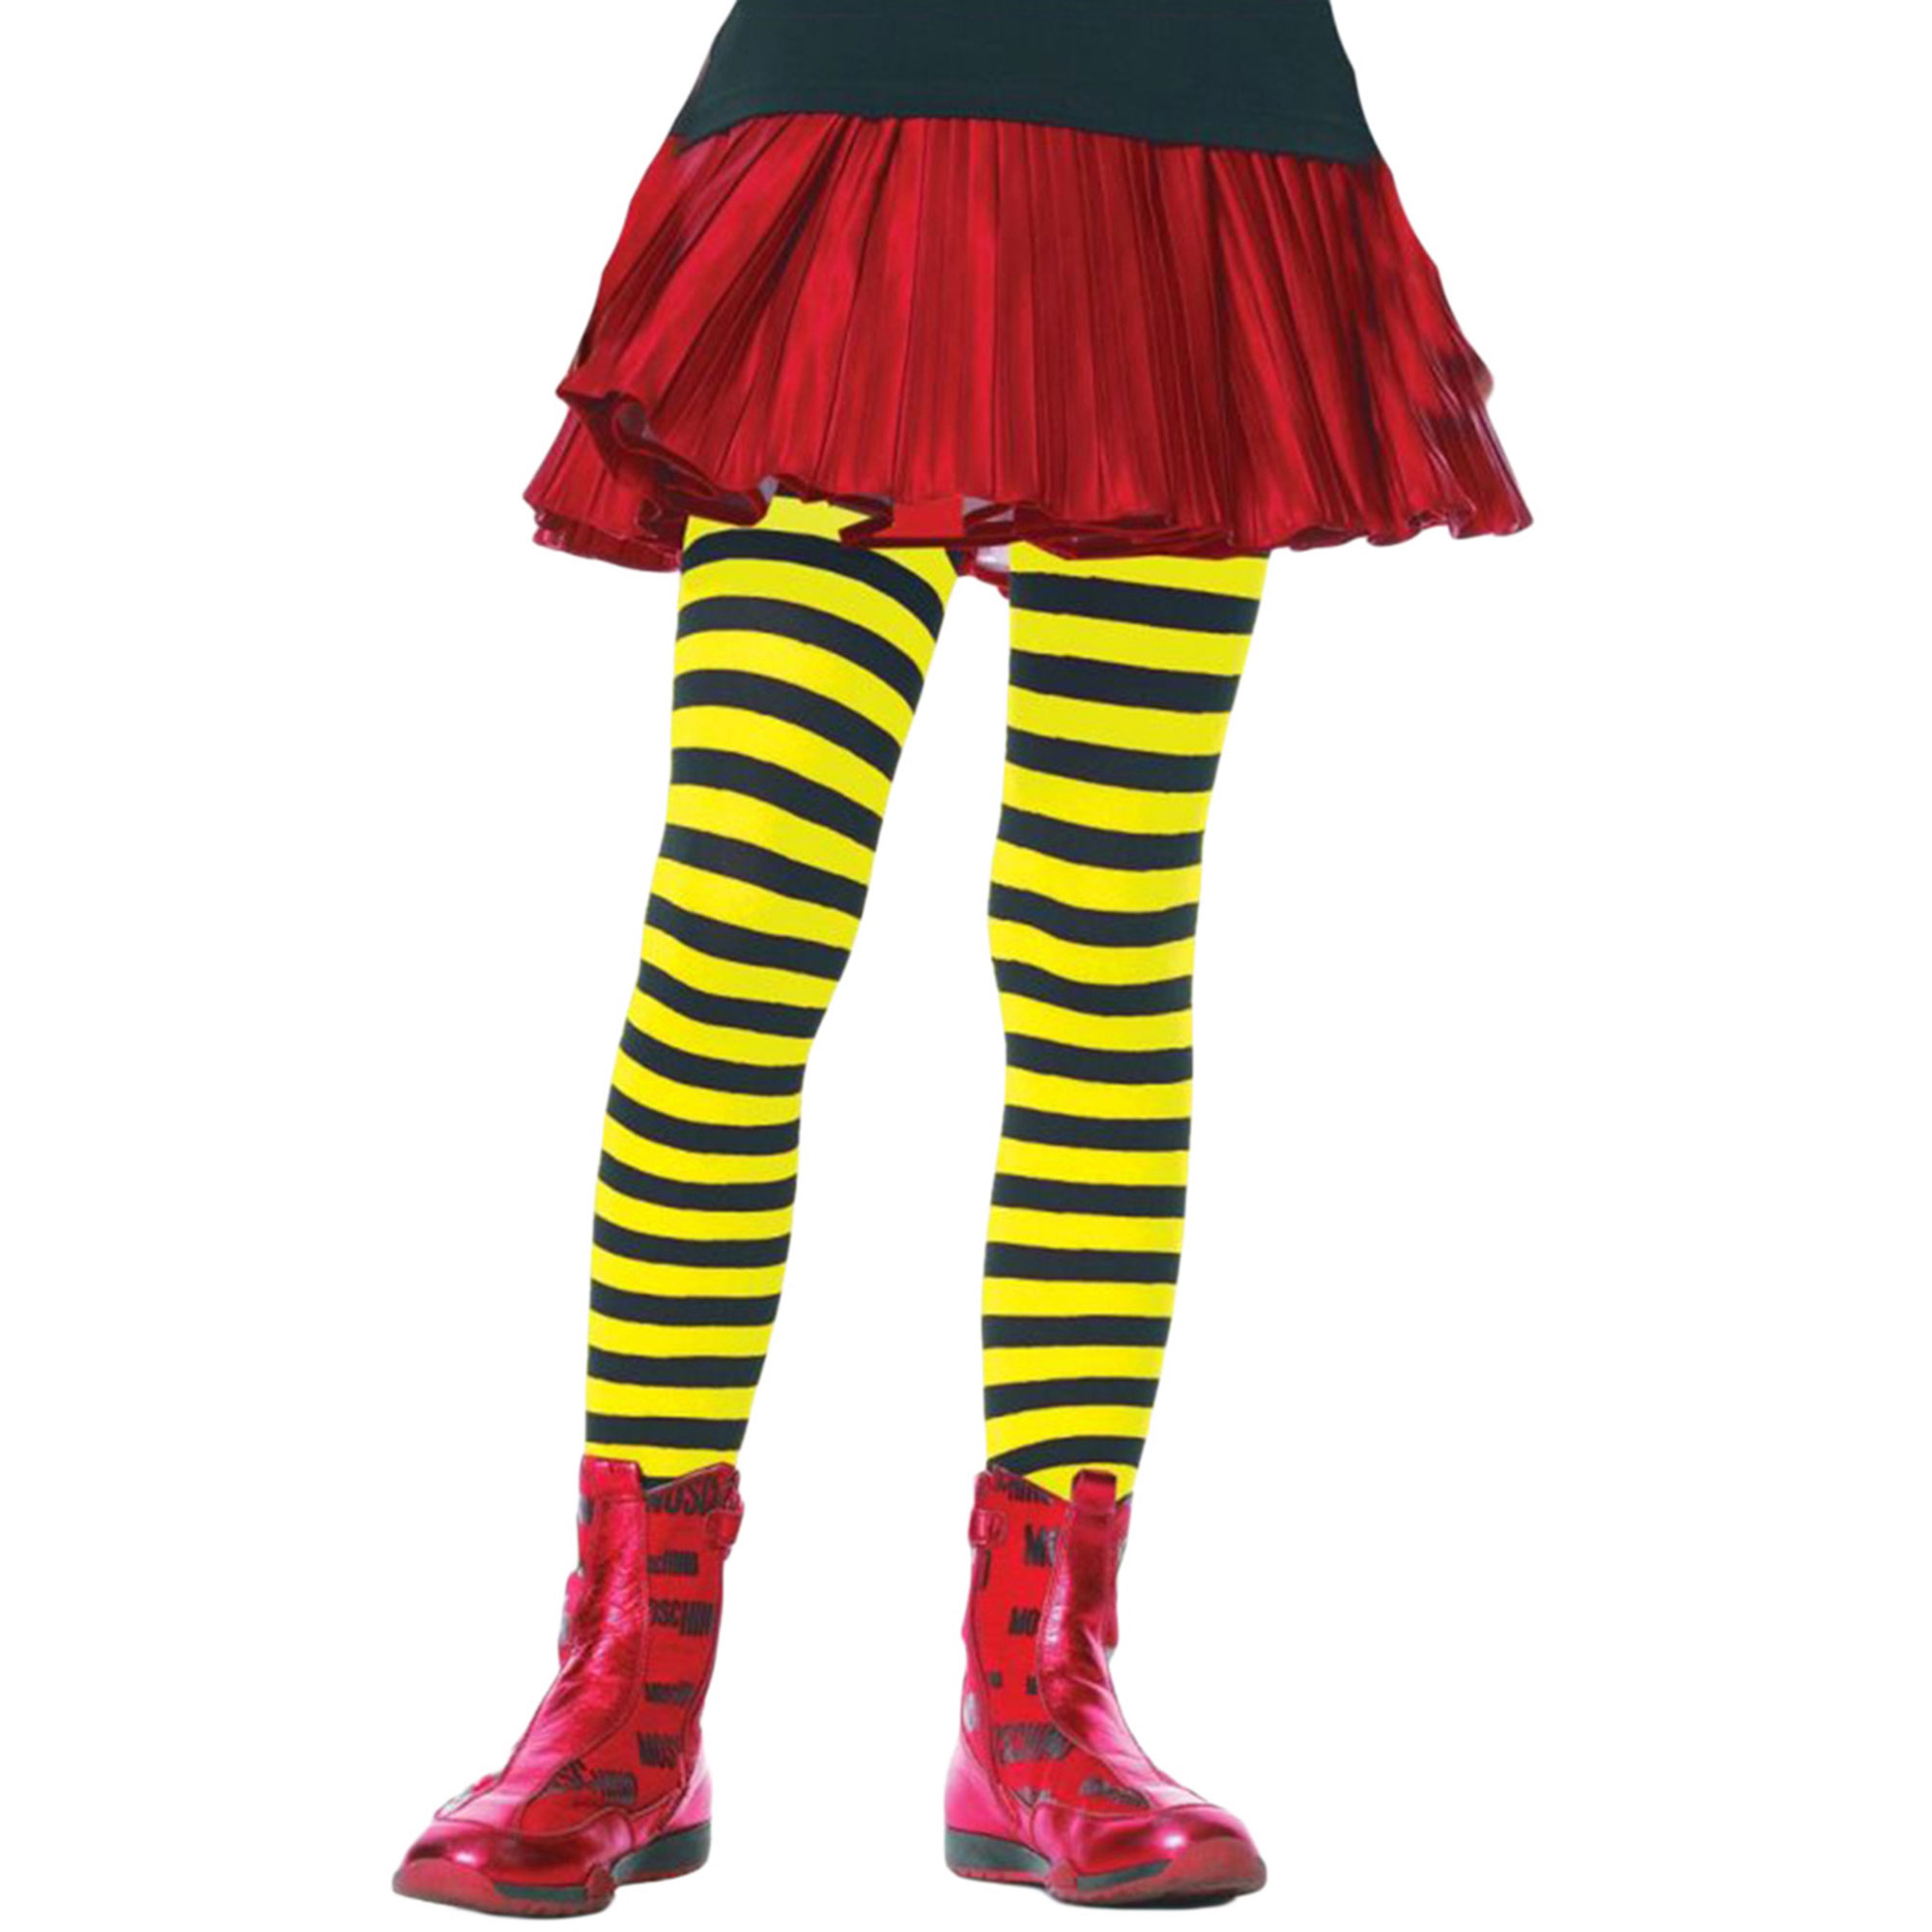 Morris Costumes Tights Child Striped Bk/Yw 4-6